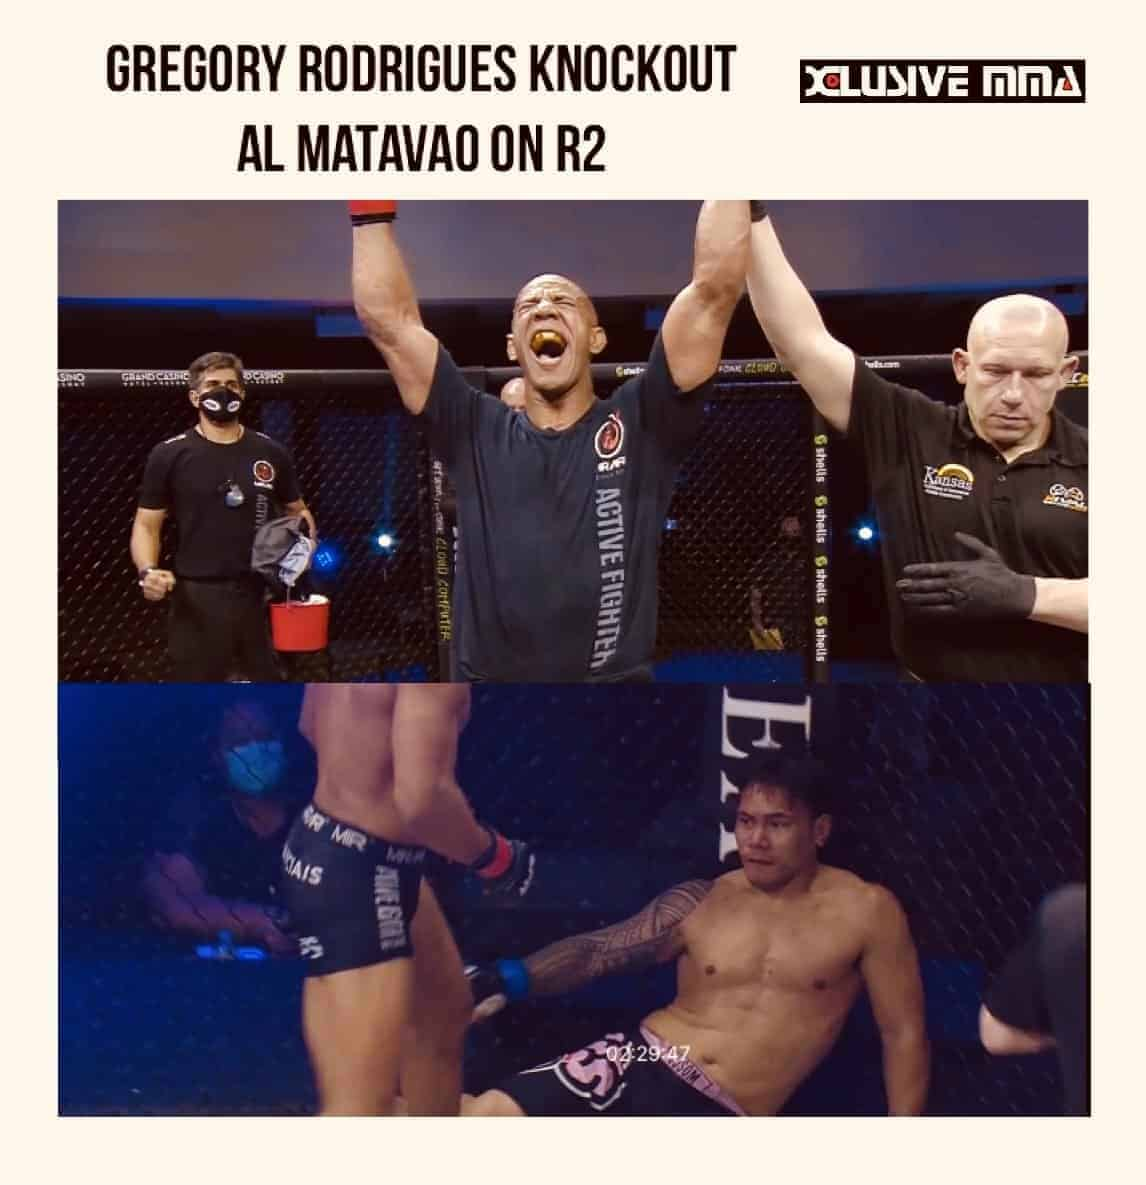 Gregory Rodrigues destroy Al Matavao on second round